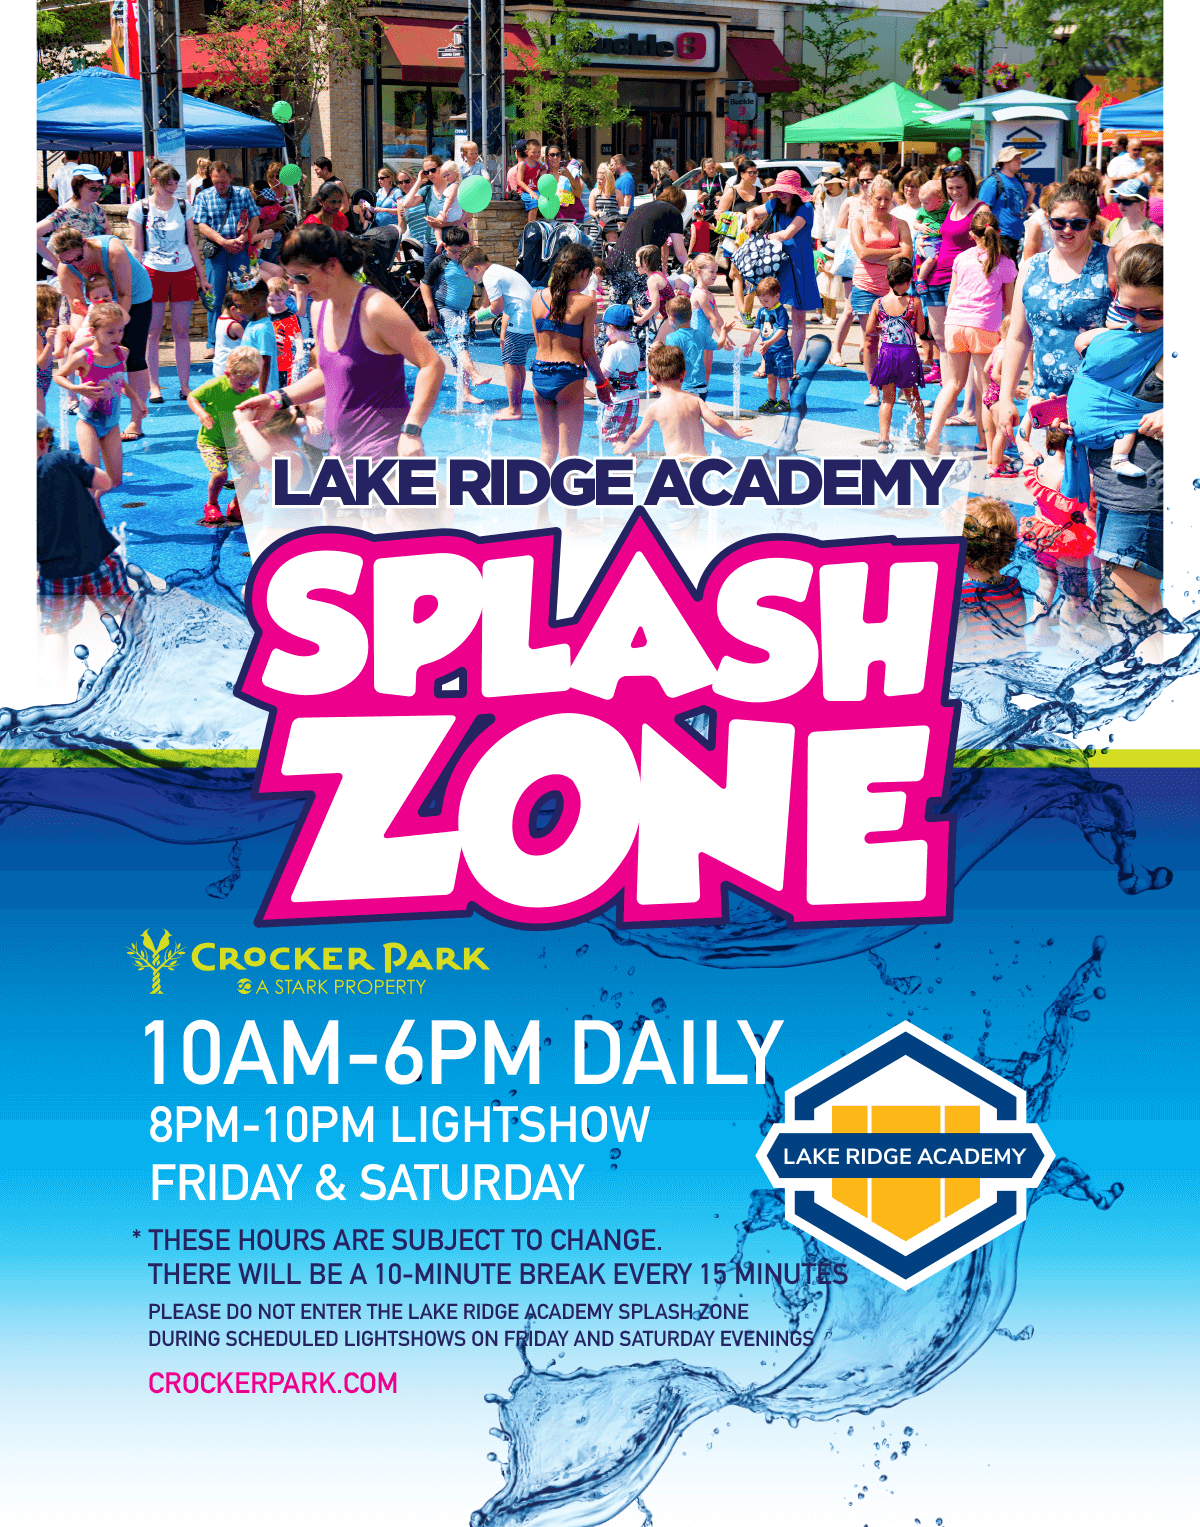 Lake Ridge Academy Splash Zone